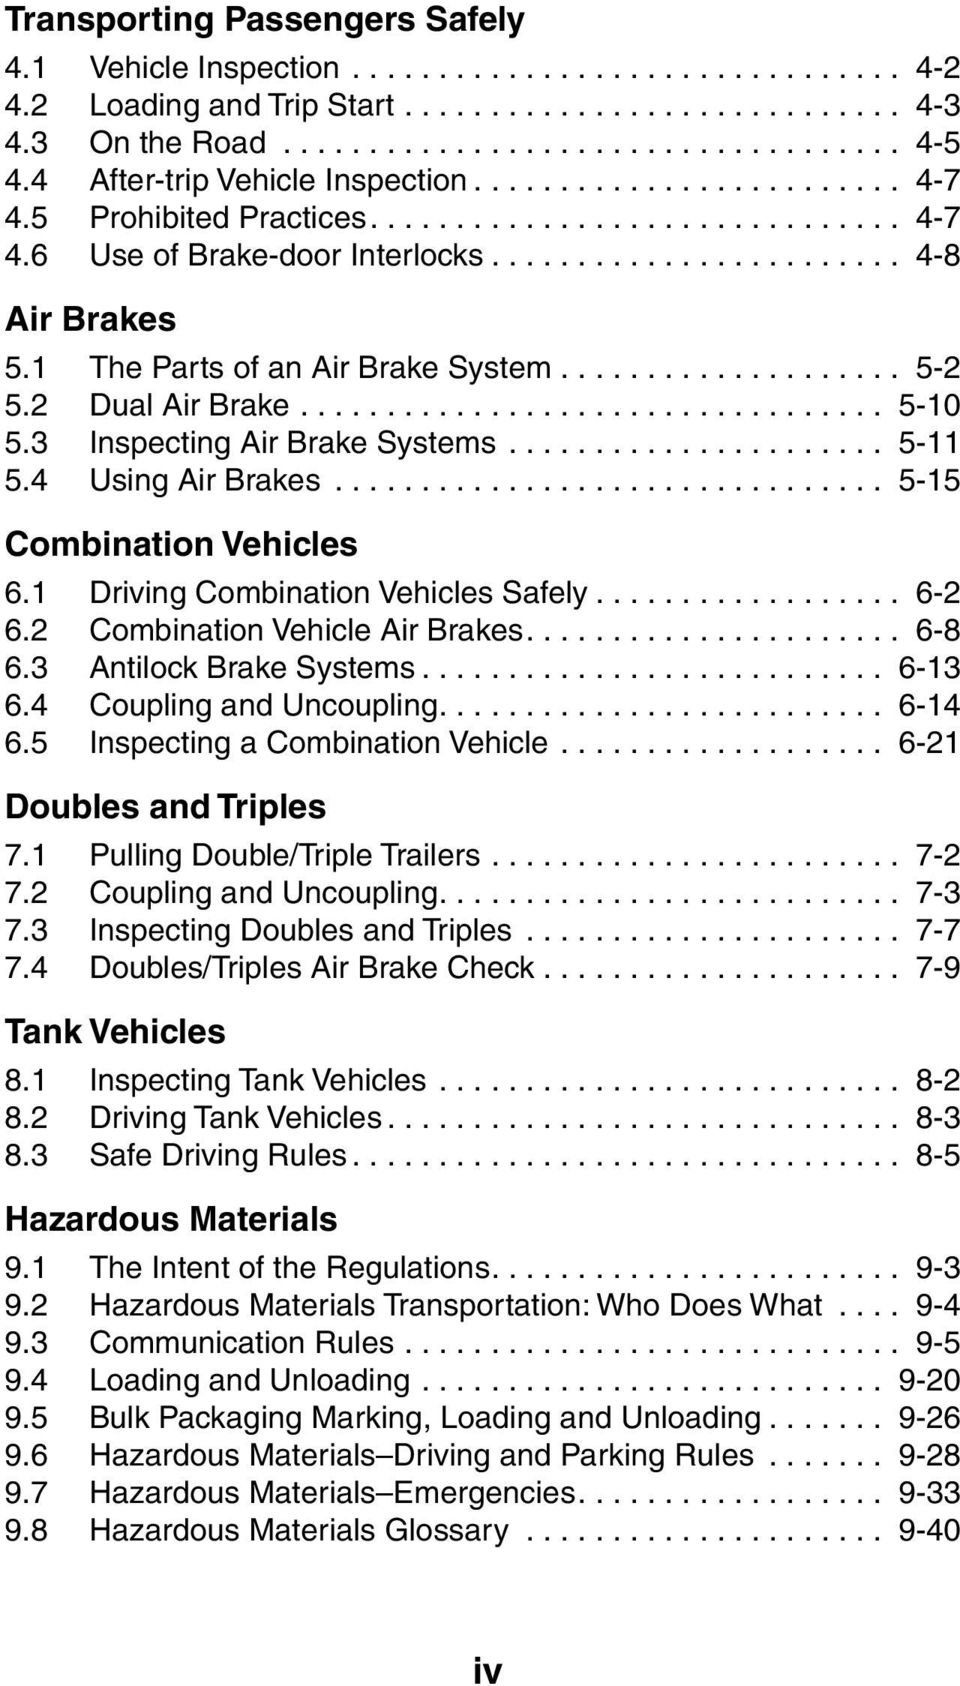 1 Driving Combination Vehicles Safely... 6-2 6.2 Combination Vehicle Air Brakes... 6-8 6.3 Antilock Brake Systems... 6-13 6.4 Coupling and Uncoupling... 6-14 6.5 Inspecting a Combination Vehicle.